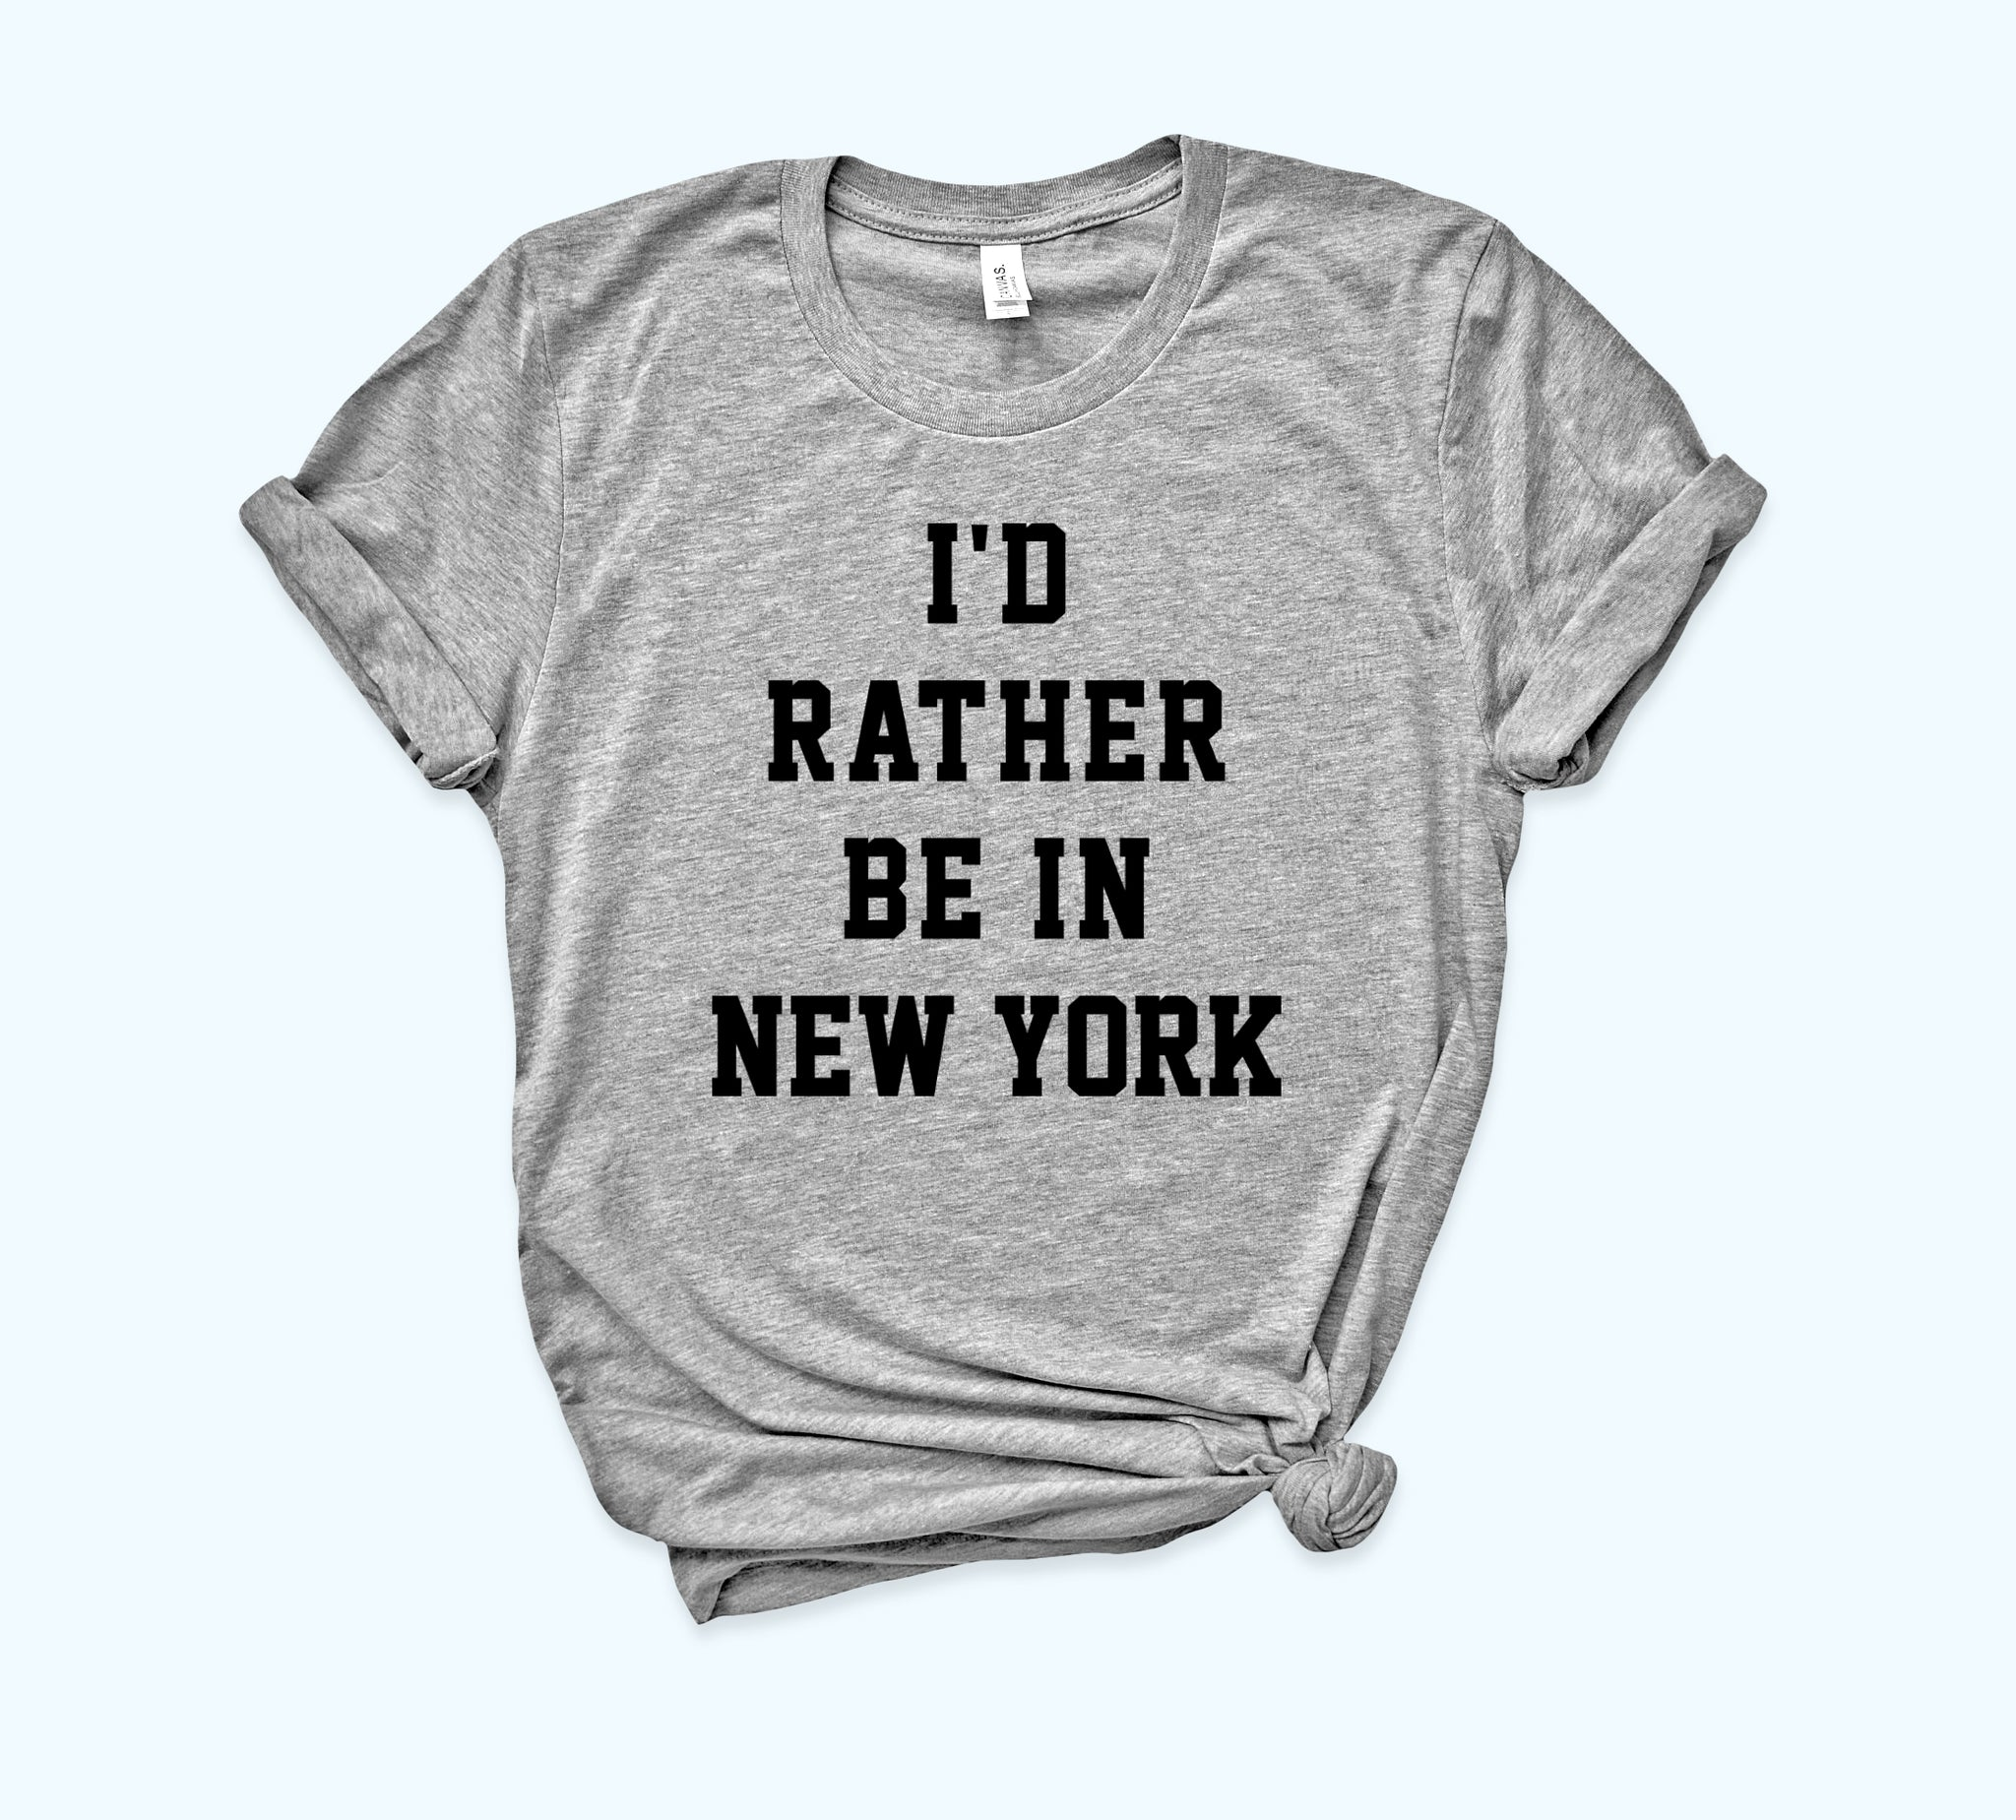 I'D Rather Be In New York Shirt